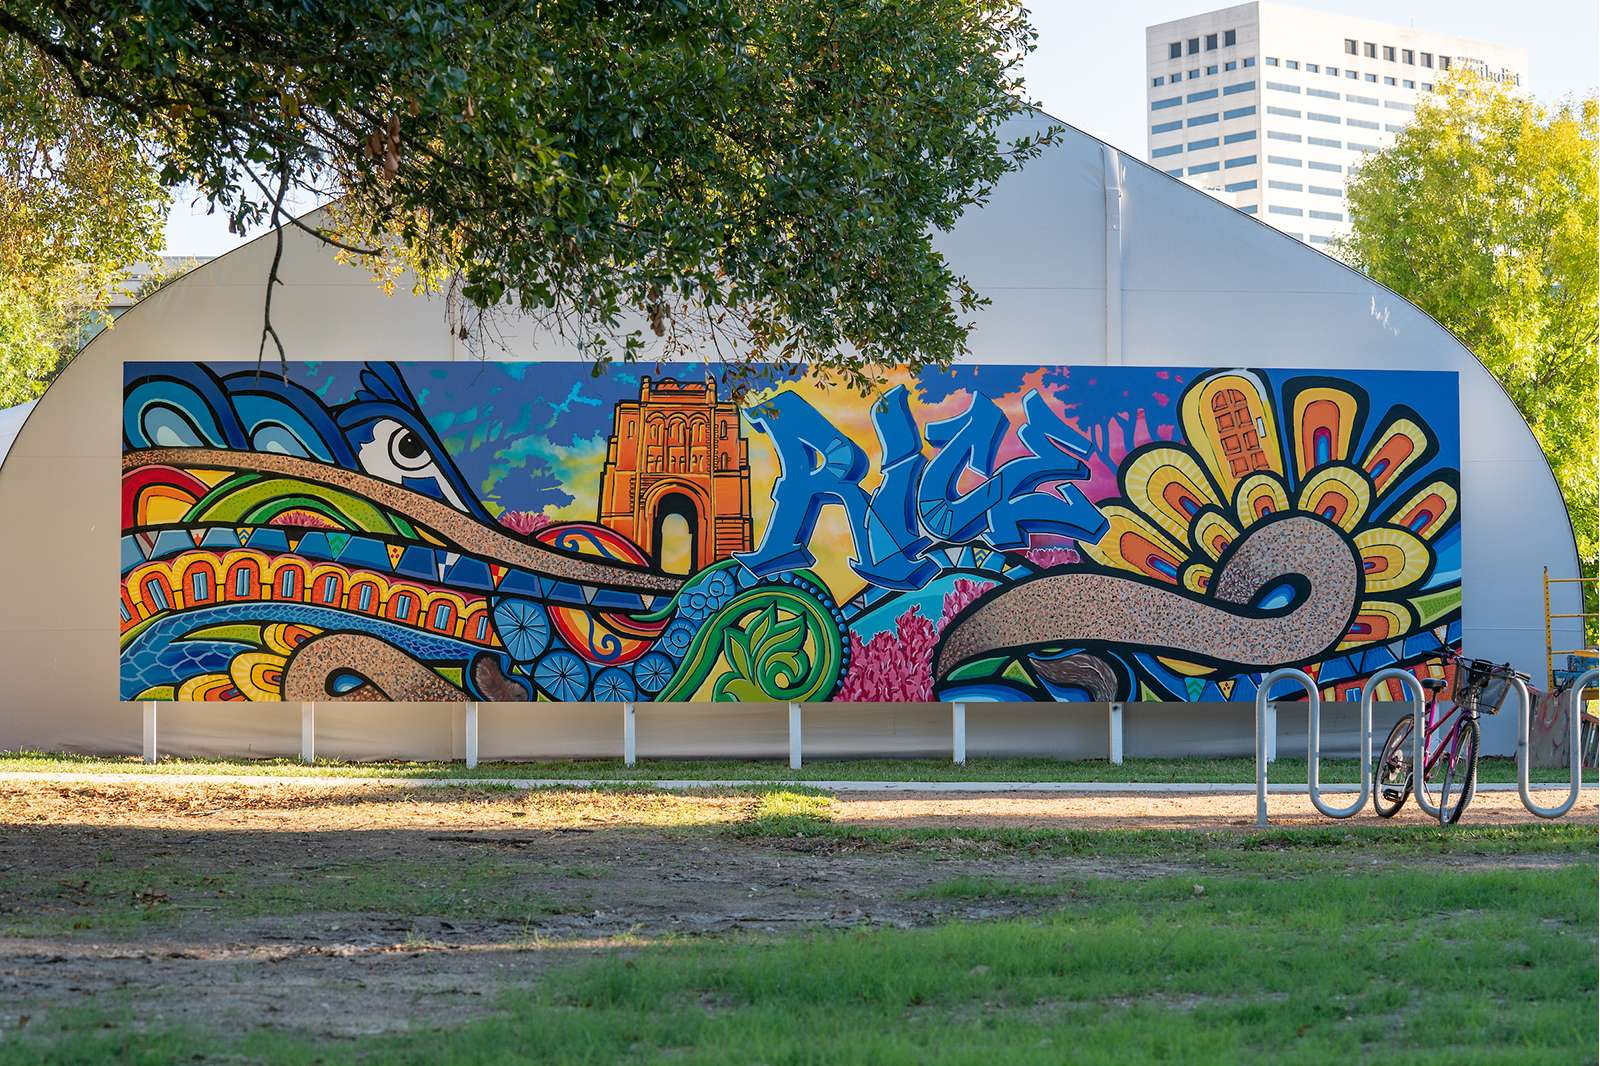 Mural by Gonzo. Photo by Tommy LaVergne.